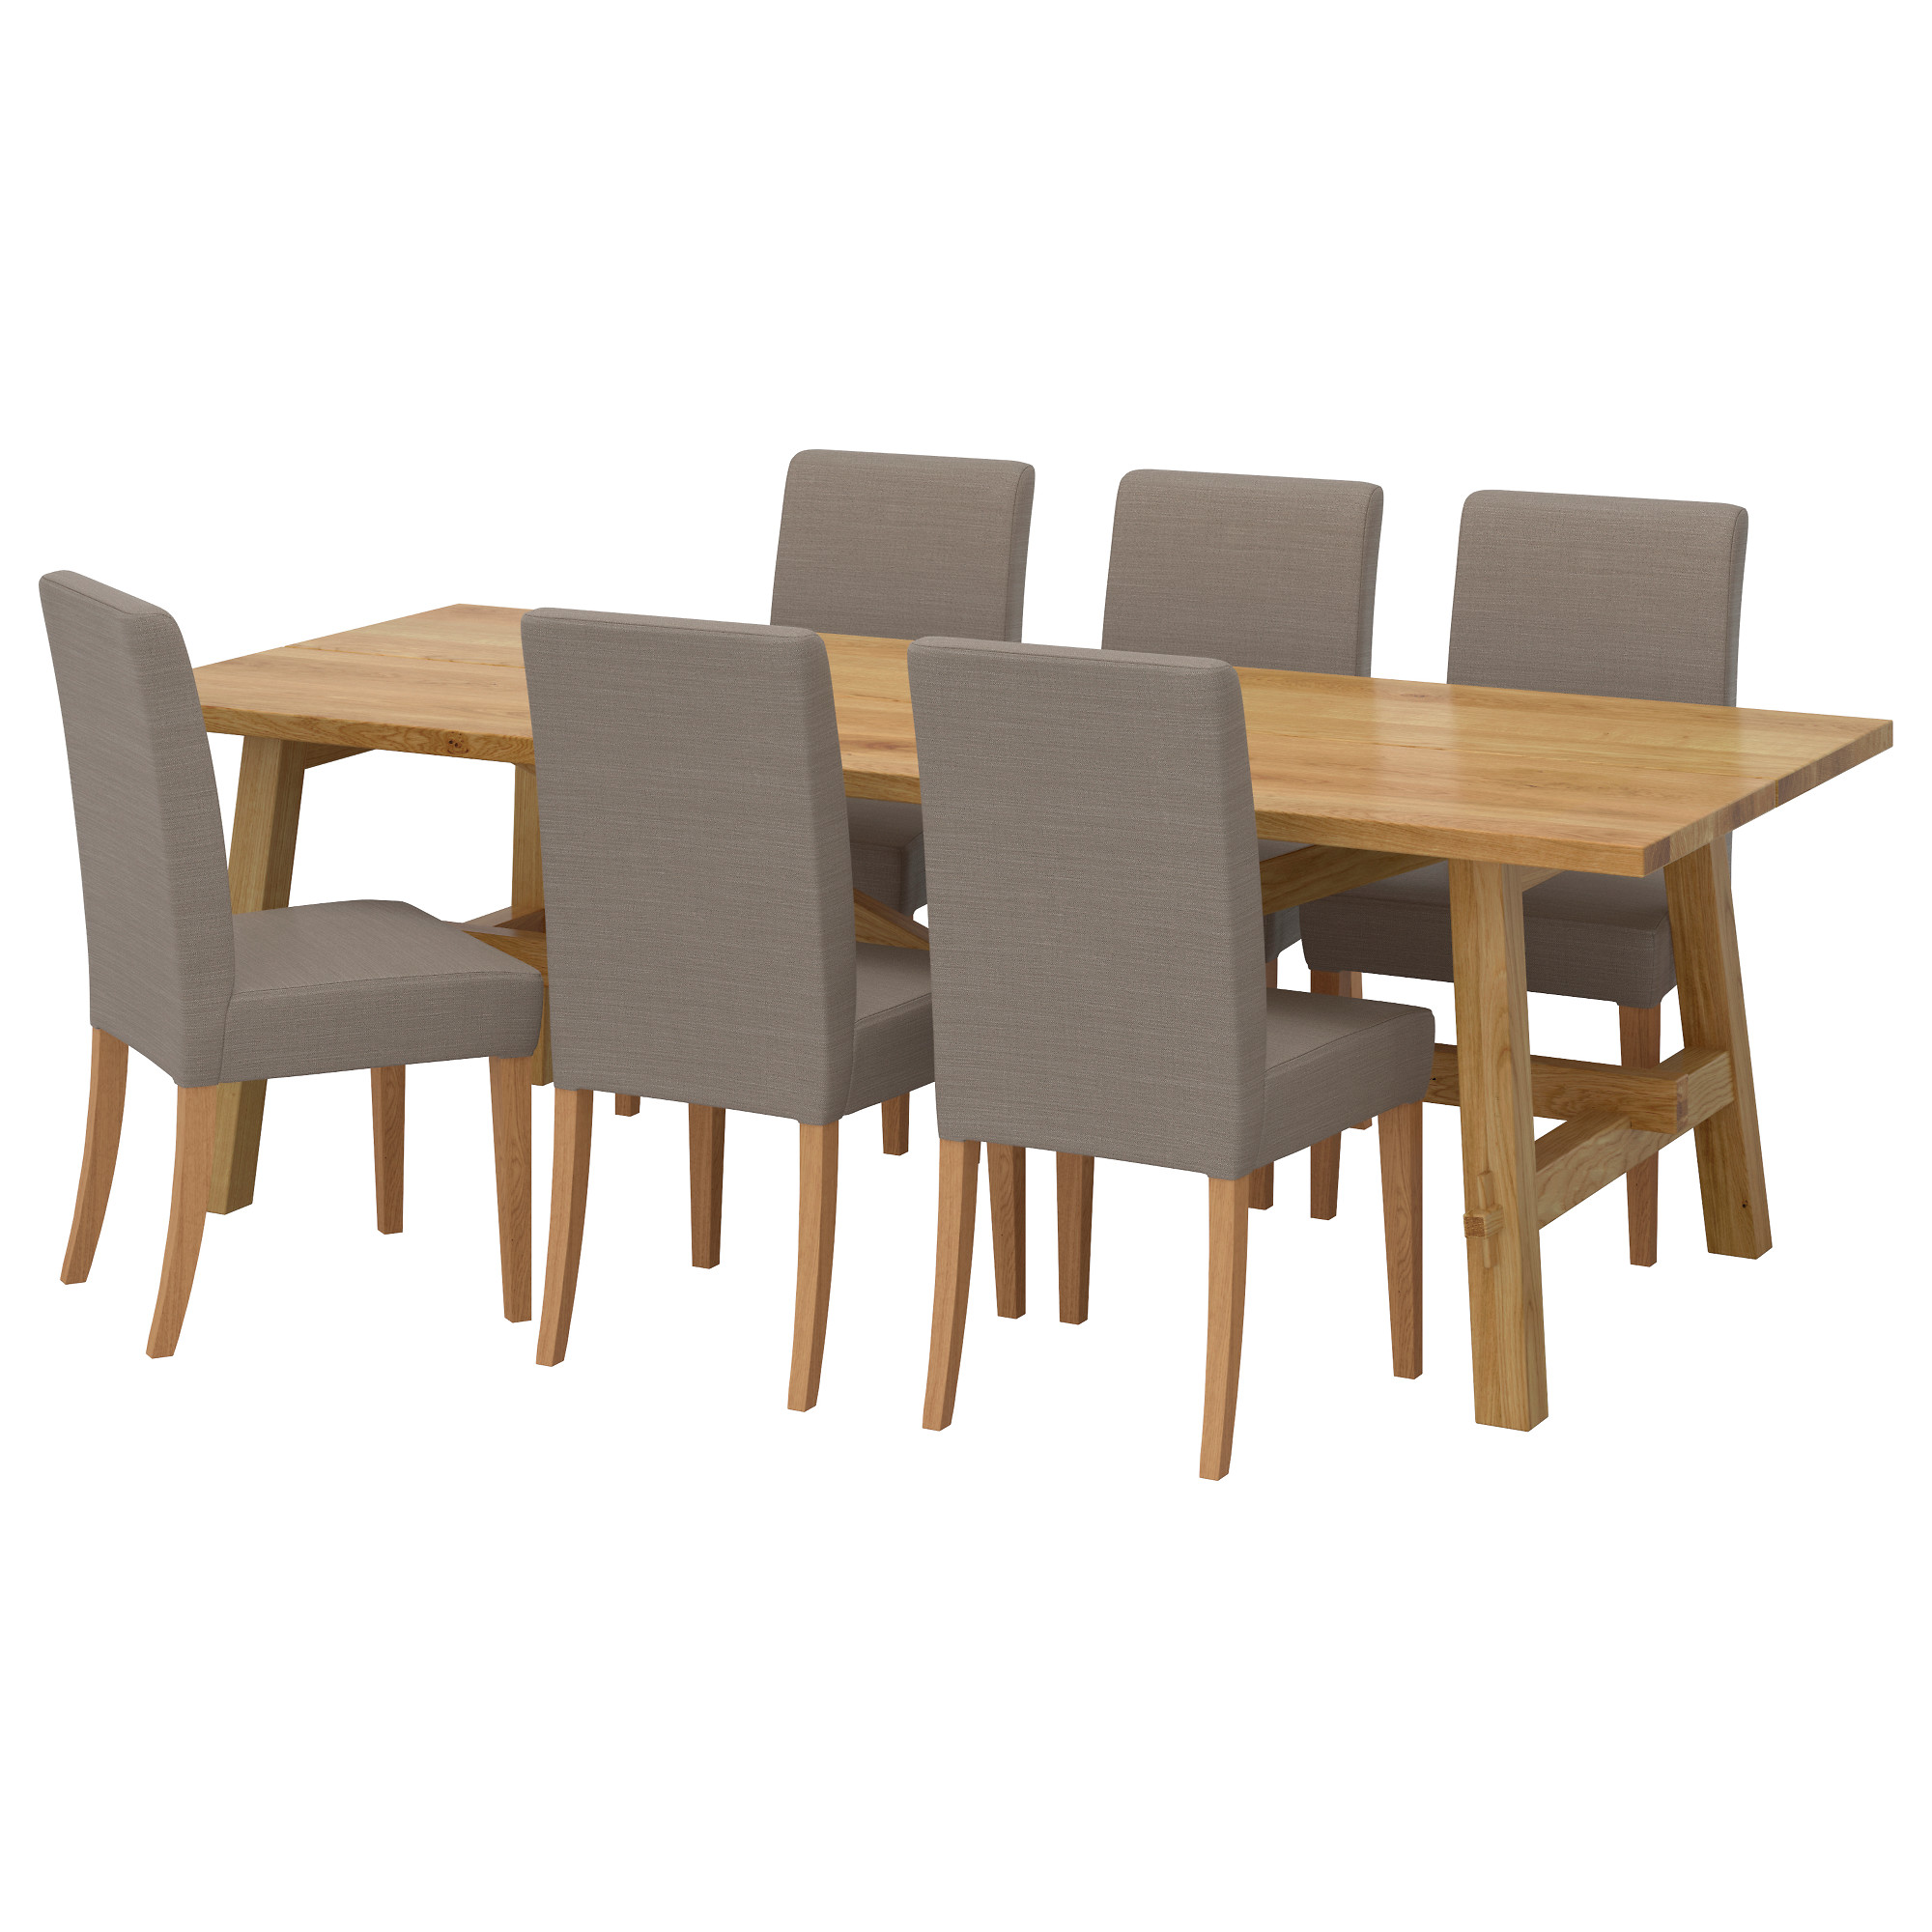 30 Inch Round Kitchen Table Dining Room Sets Ikea